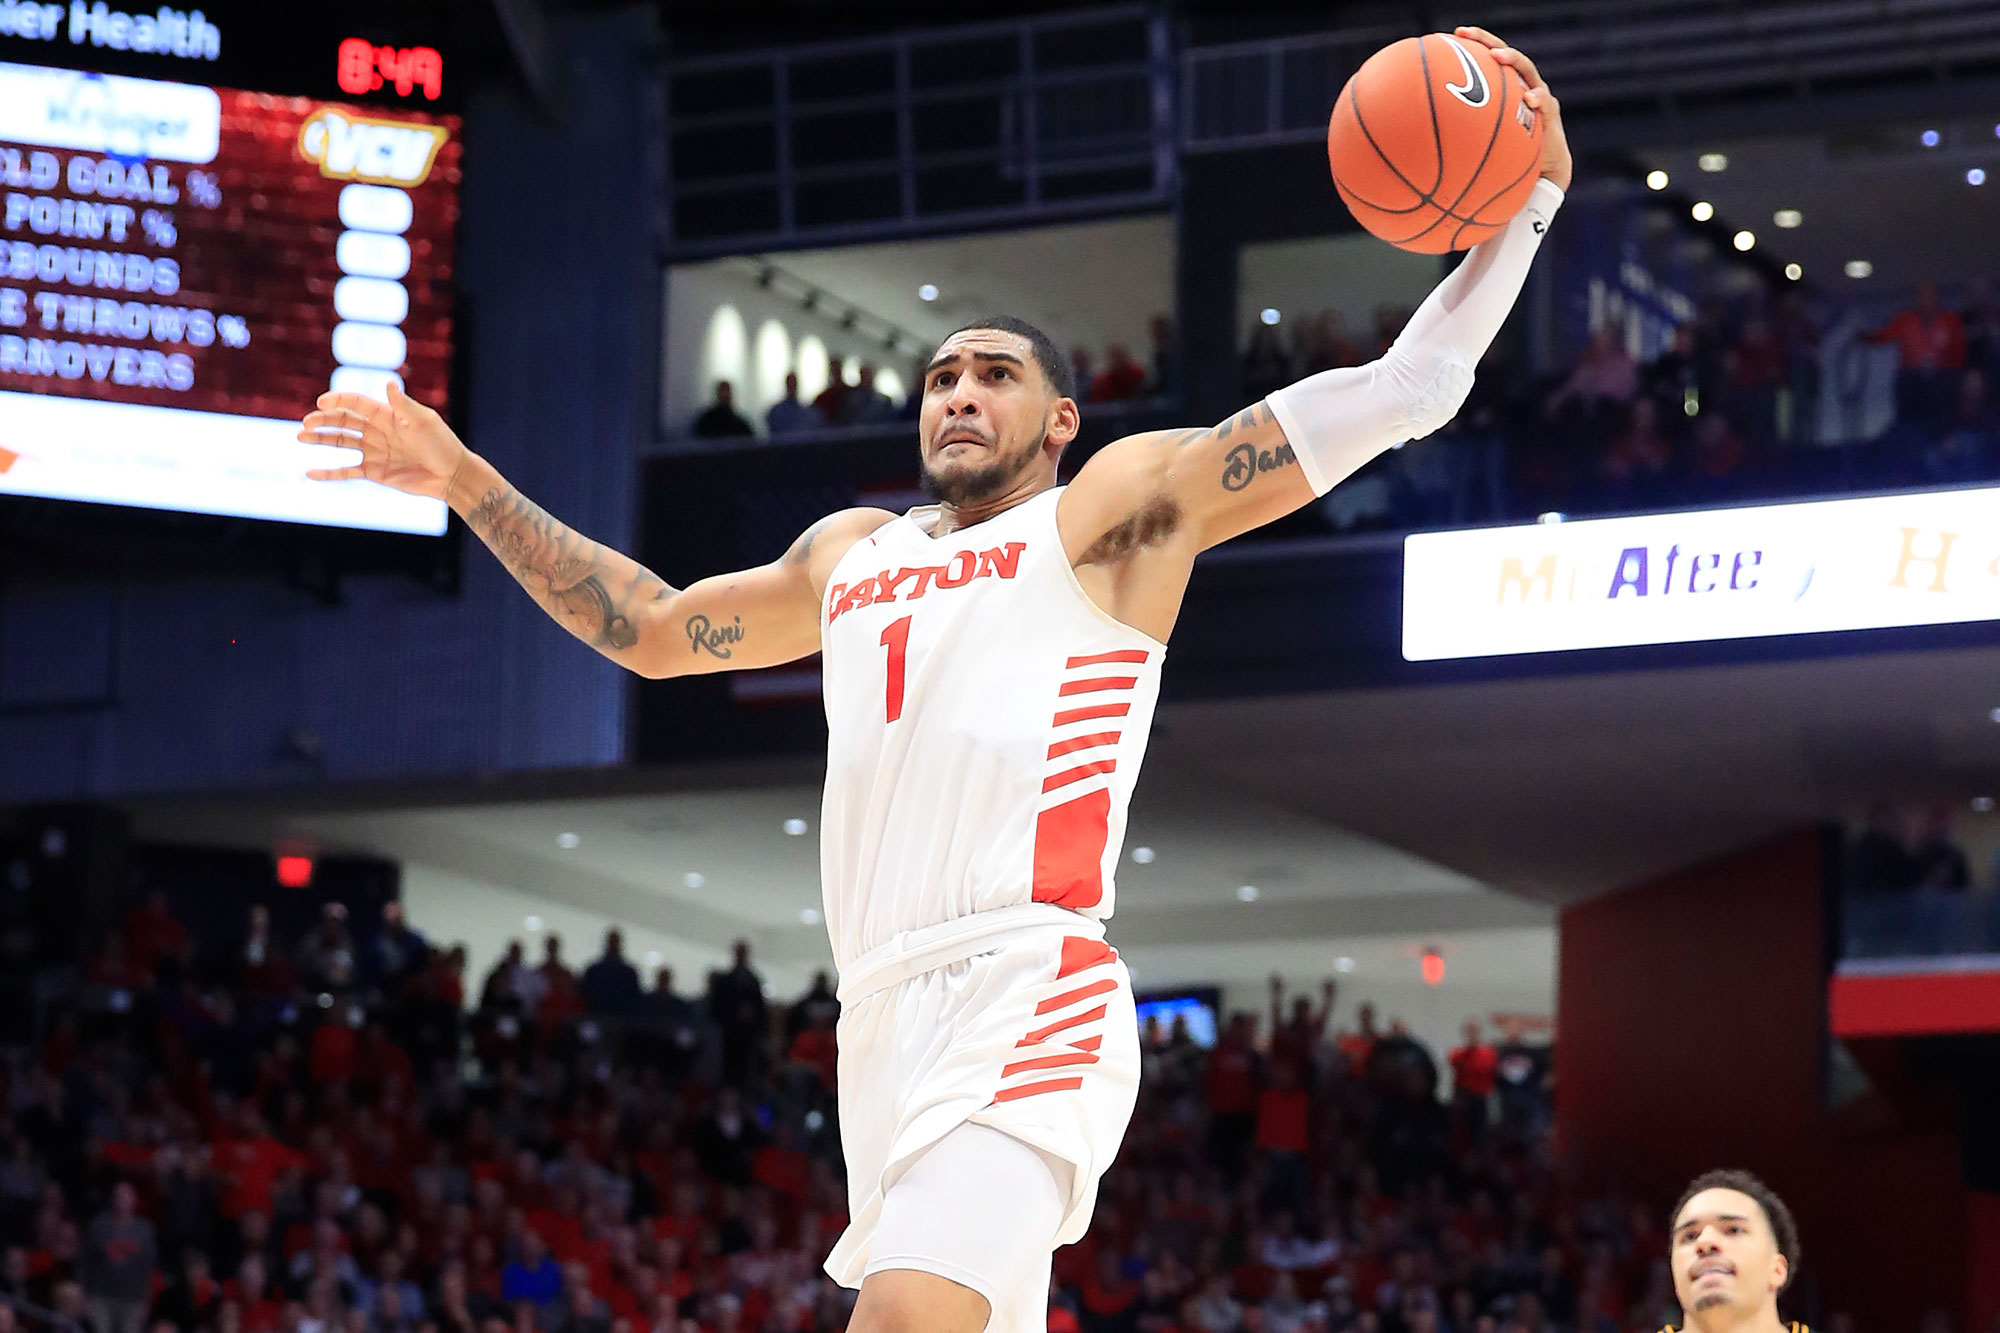 March Madness: Obi Toppin, Dayton primed for new NCAA heights